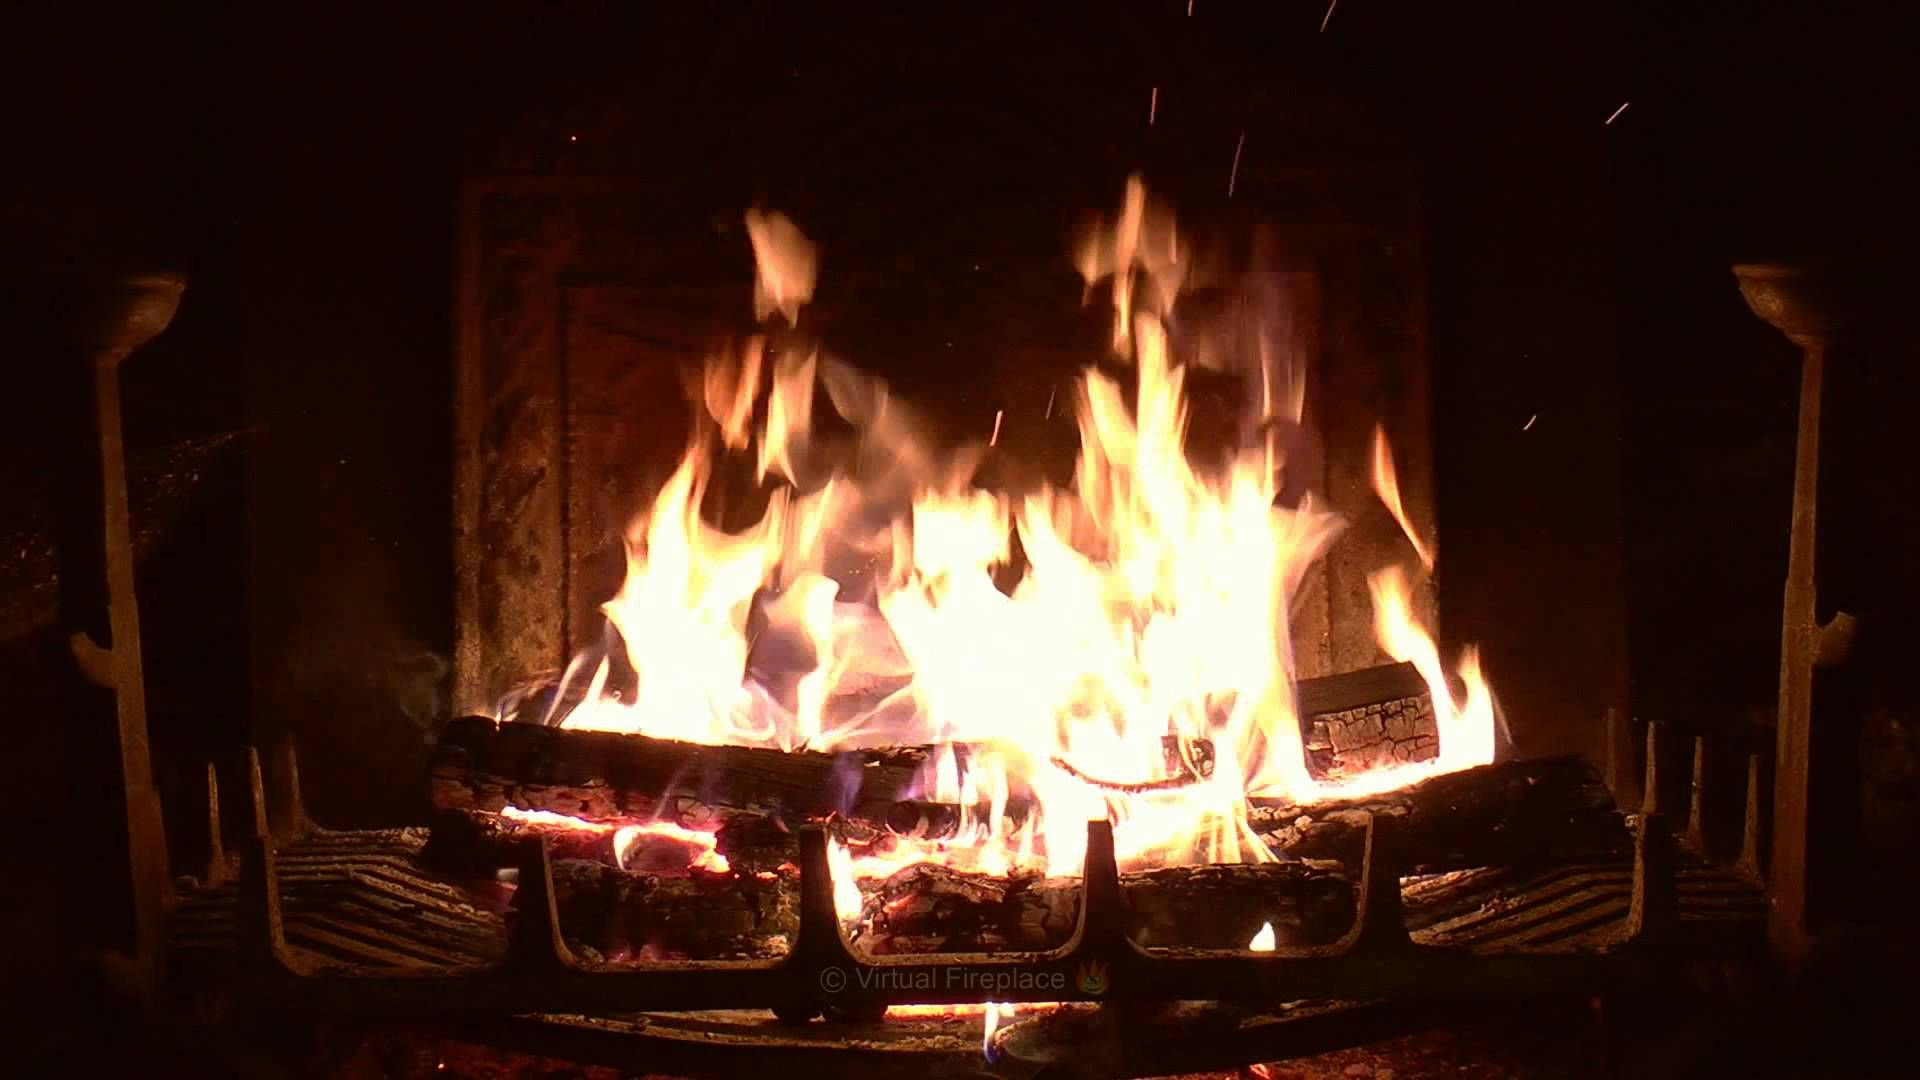 crackling fireplace with thunder rain and howling wind sounds hd rh pinterest com crackling fireplace sound effect crackling fire sound effect free